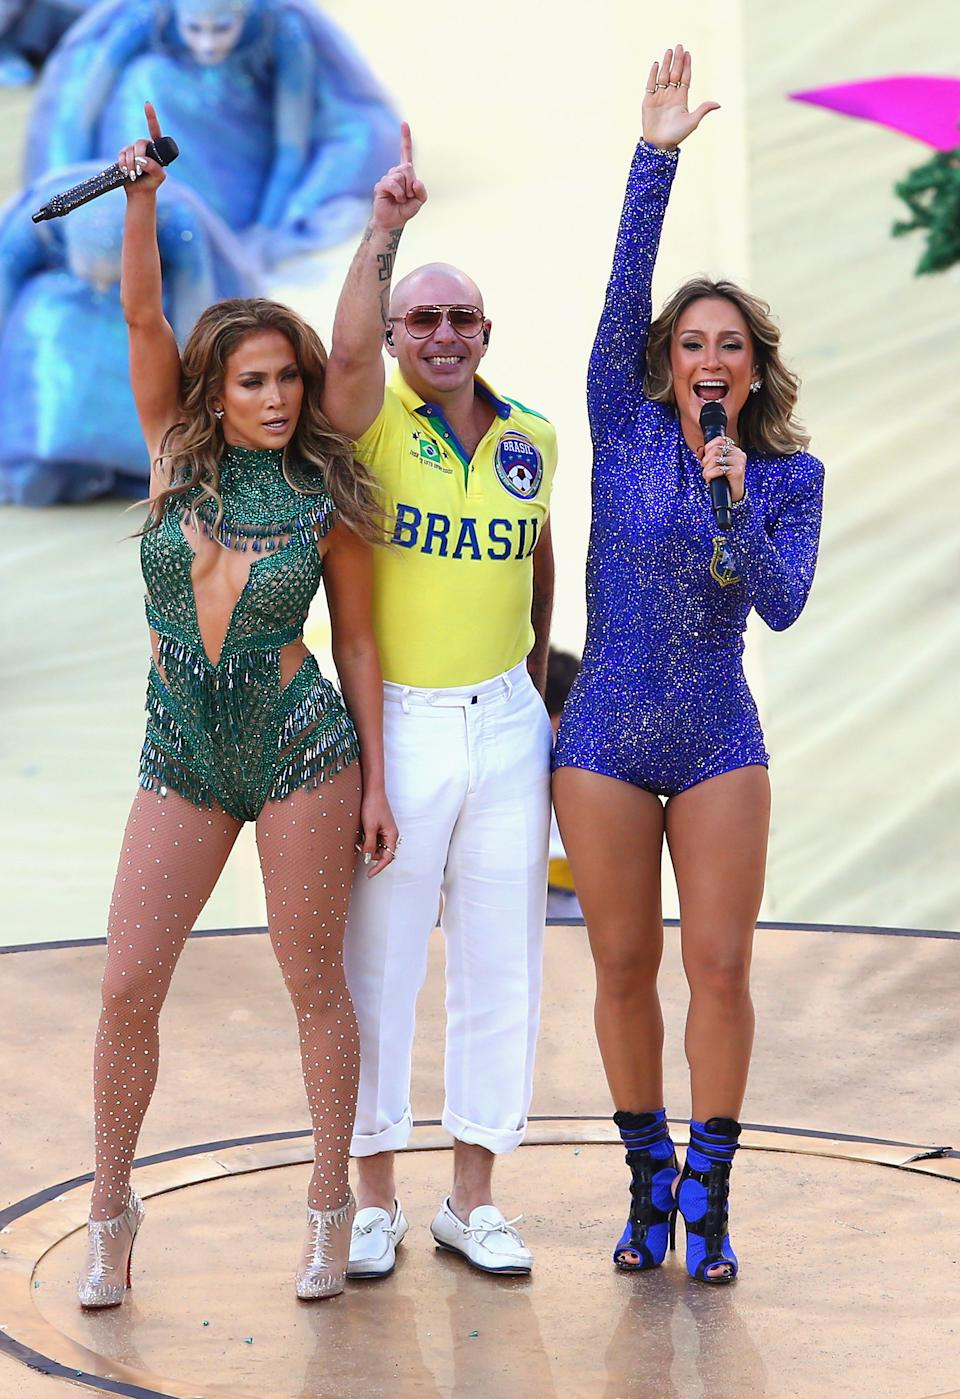 SAO PAULO, BRAZIL - JUNE 12:  (L-R) Singers Jennifer Lopez, Pitbull and Claudia Leitte perform during the Opening Ceremony of the 2014 FIFA World Cup Brazil prior to the Group A match between Brazil and Croatia at Arena de Sao Paulo on June 12, 2014 in Sao Paulo, Brazil.  (Photo by Elsa/Getty Images)